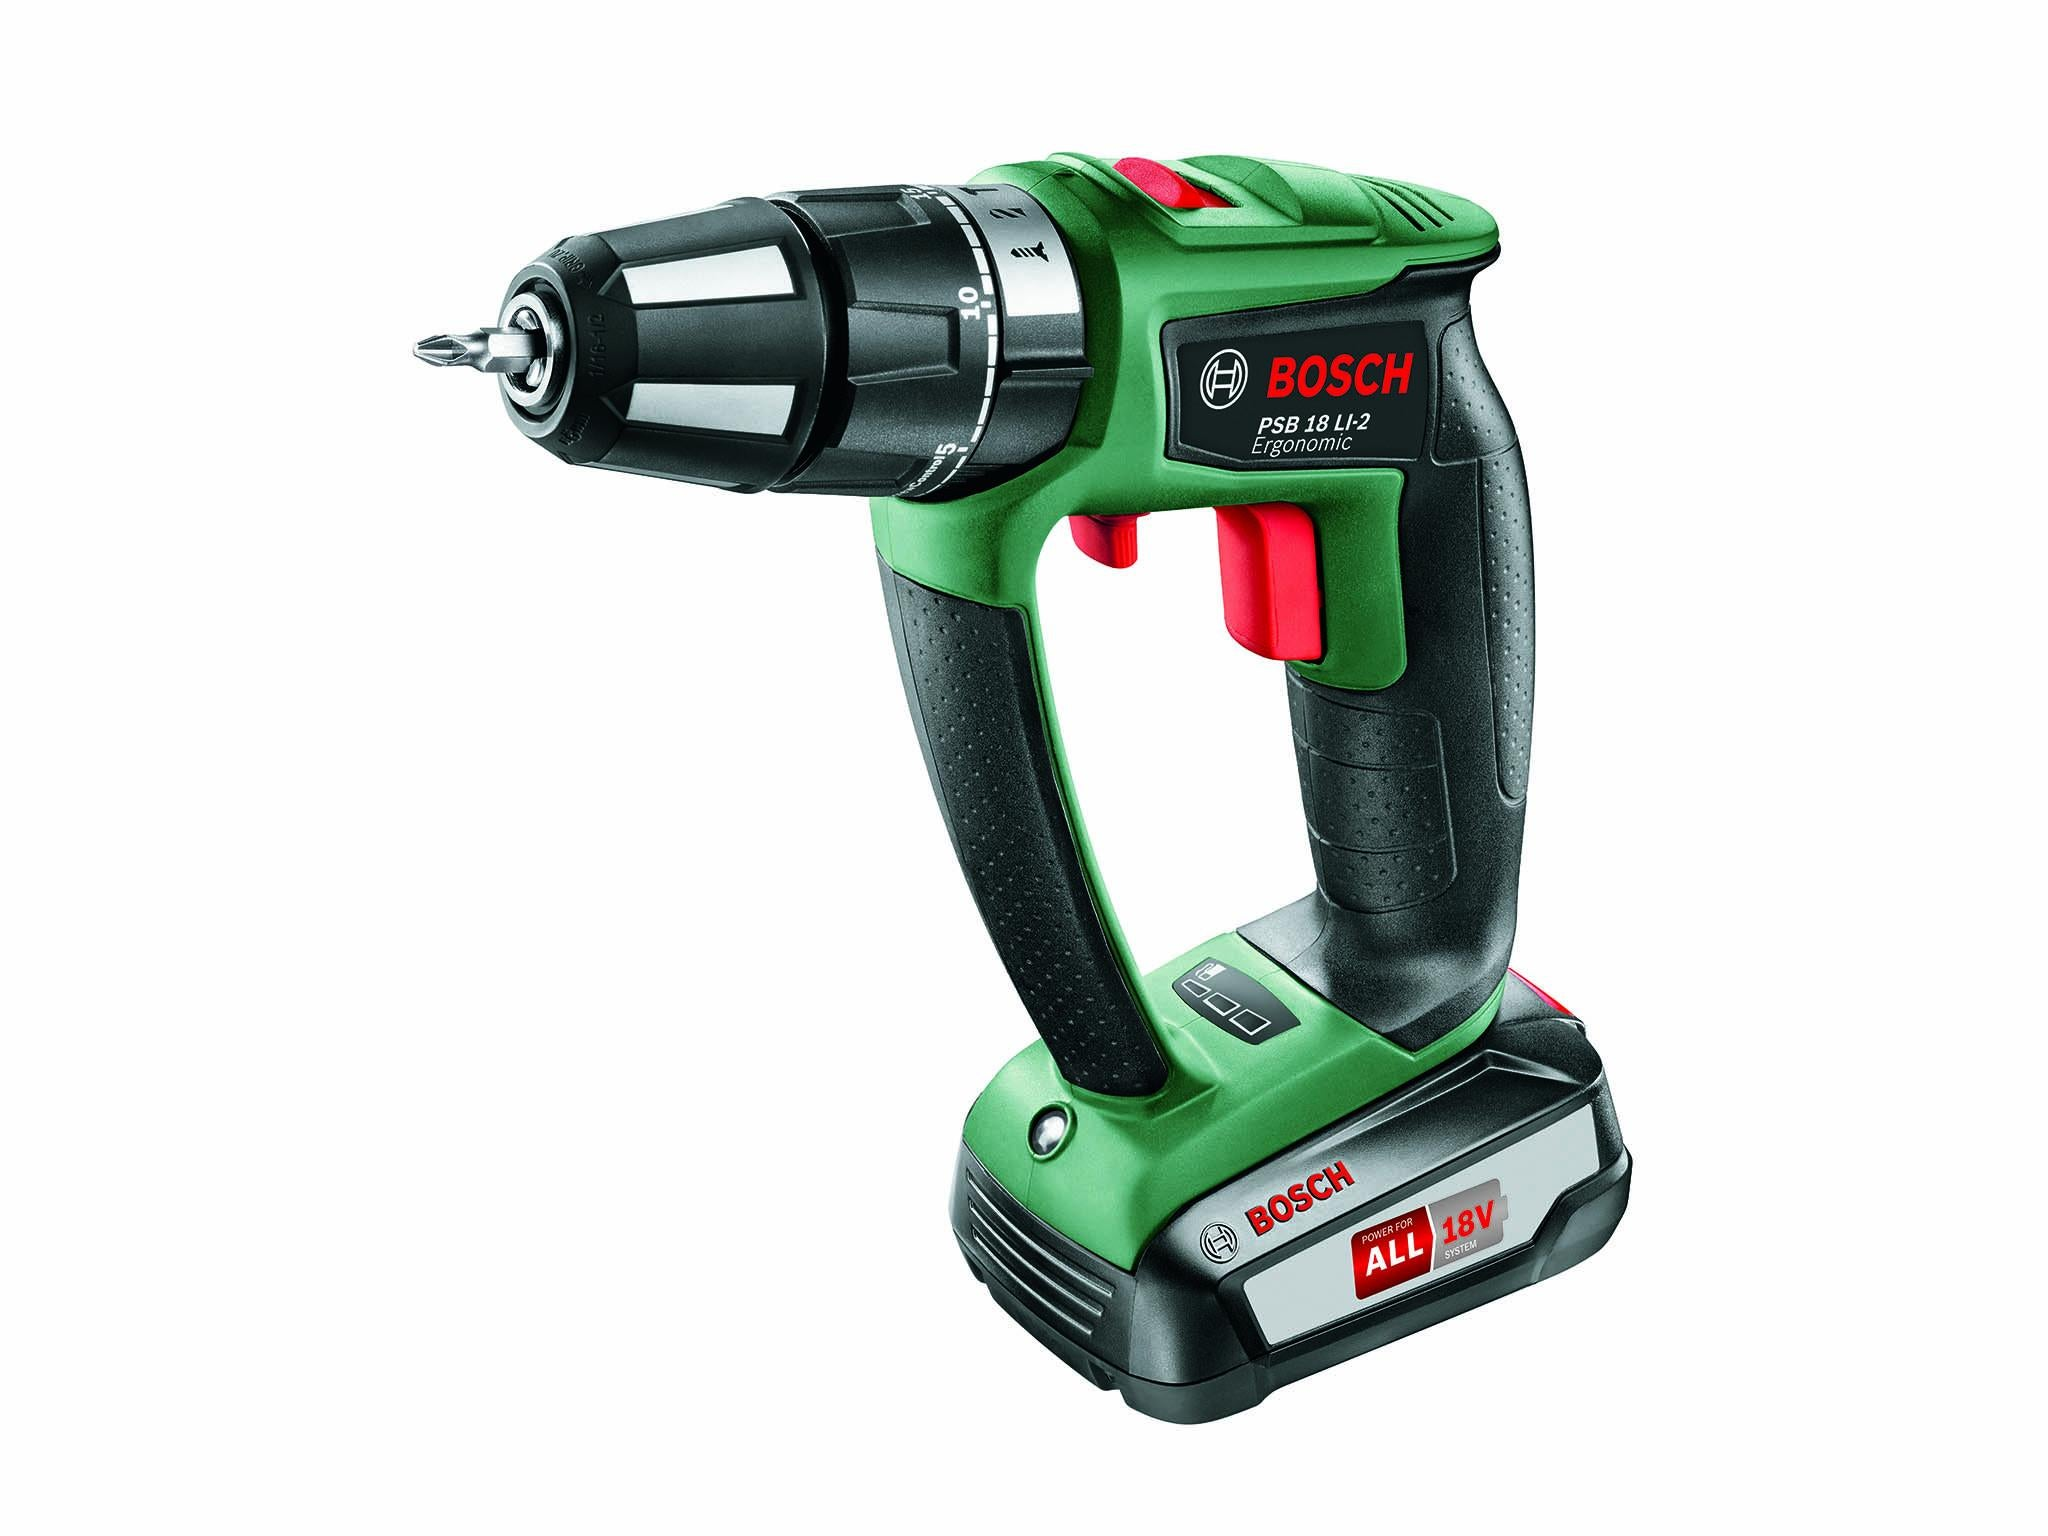 Best cordless drills for DIY | The Independent